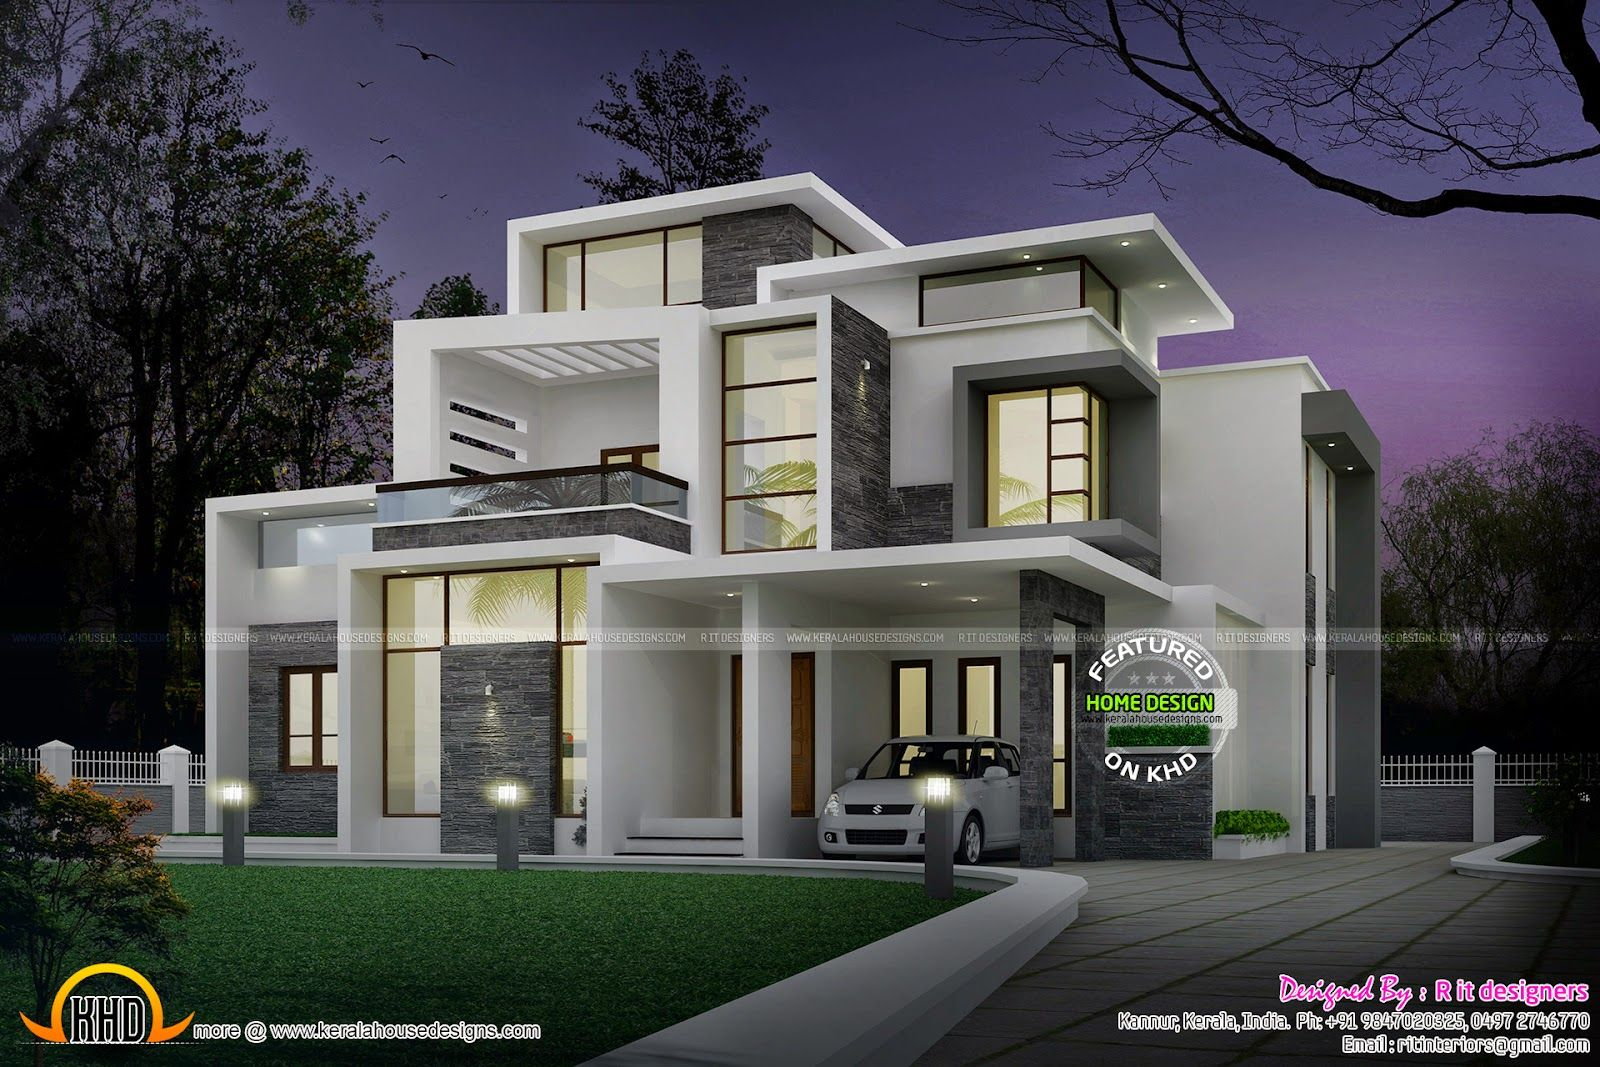 Grand contemporary home design kerala home design and for Contemporary mansions